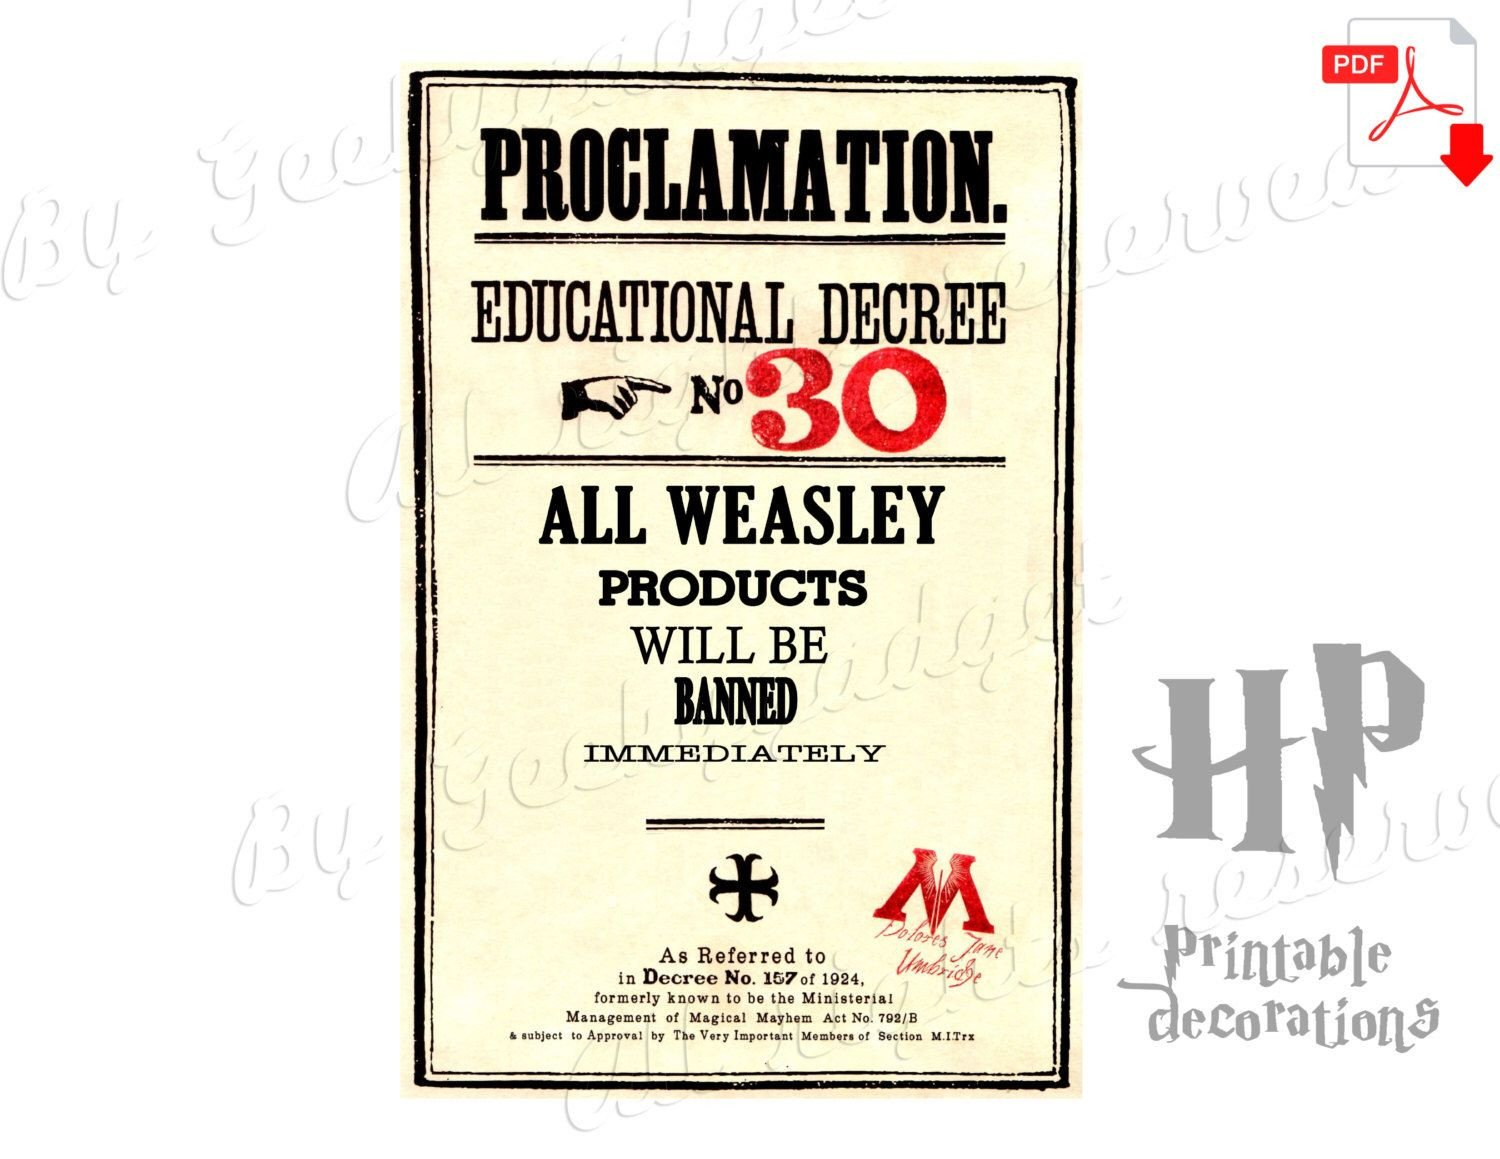 Harry Potter Proclamation Template Weasley Products Educational Decree Proclamation 30